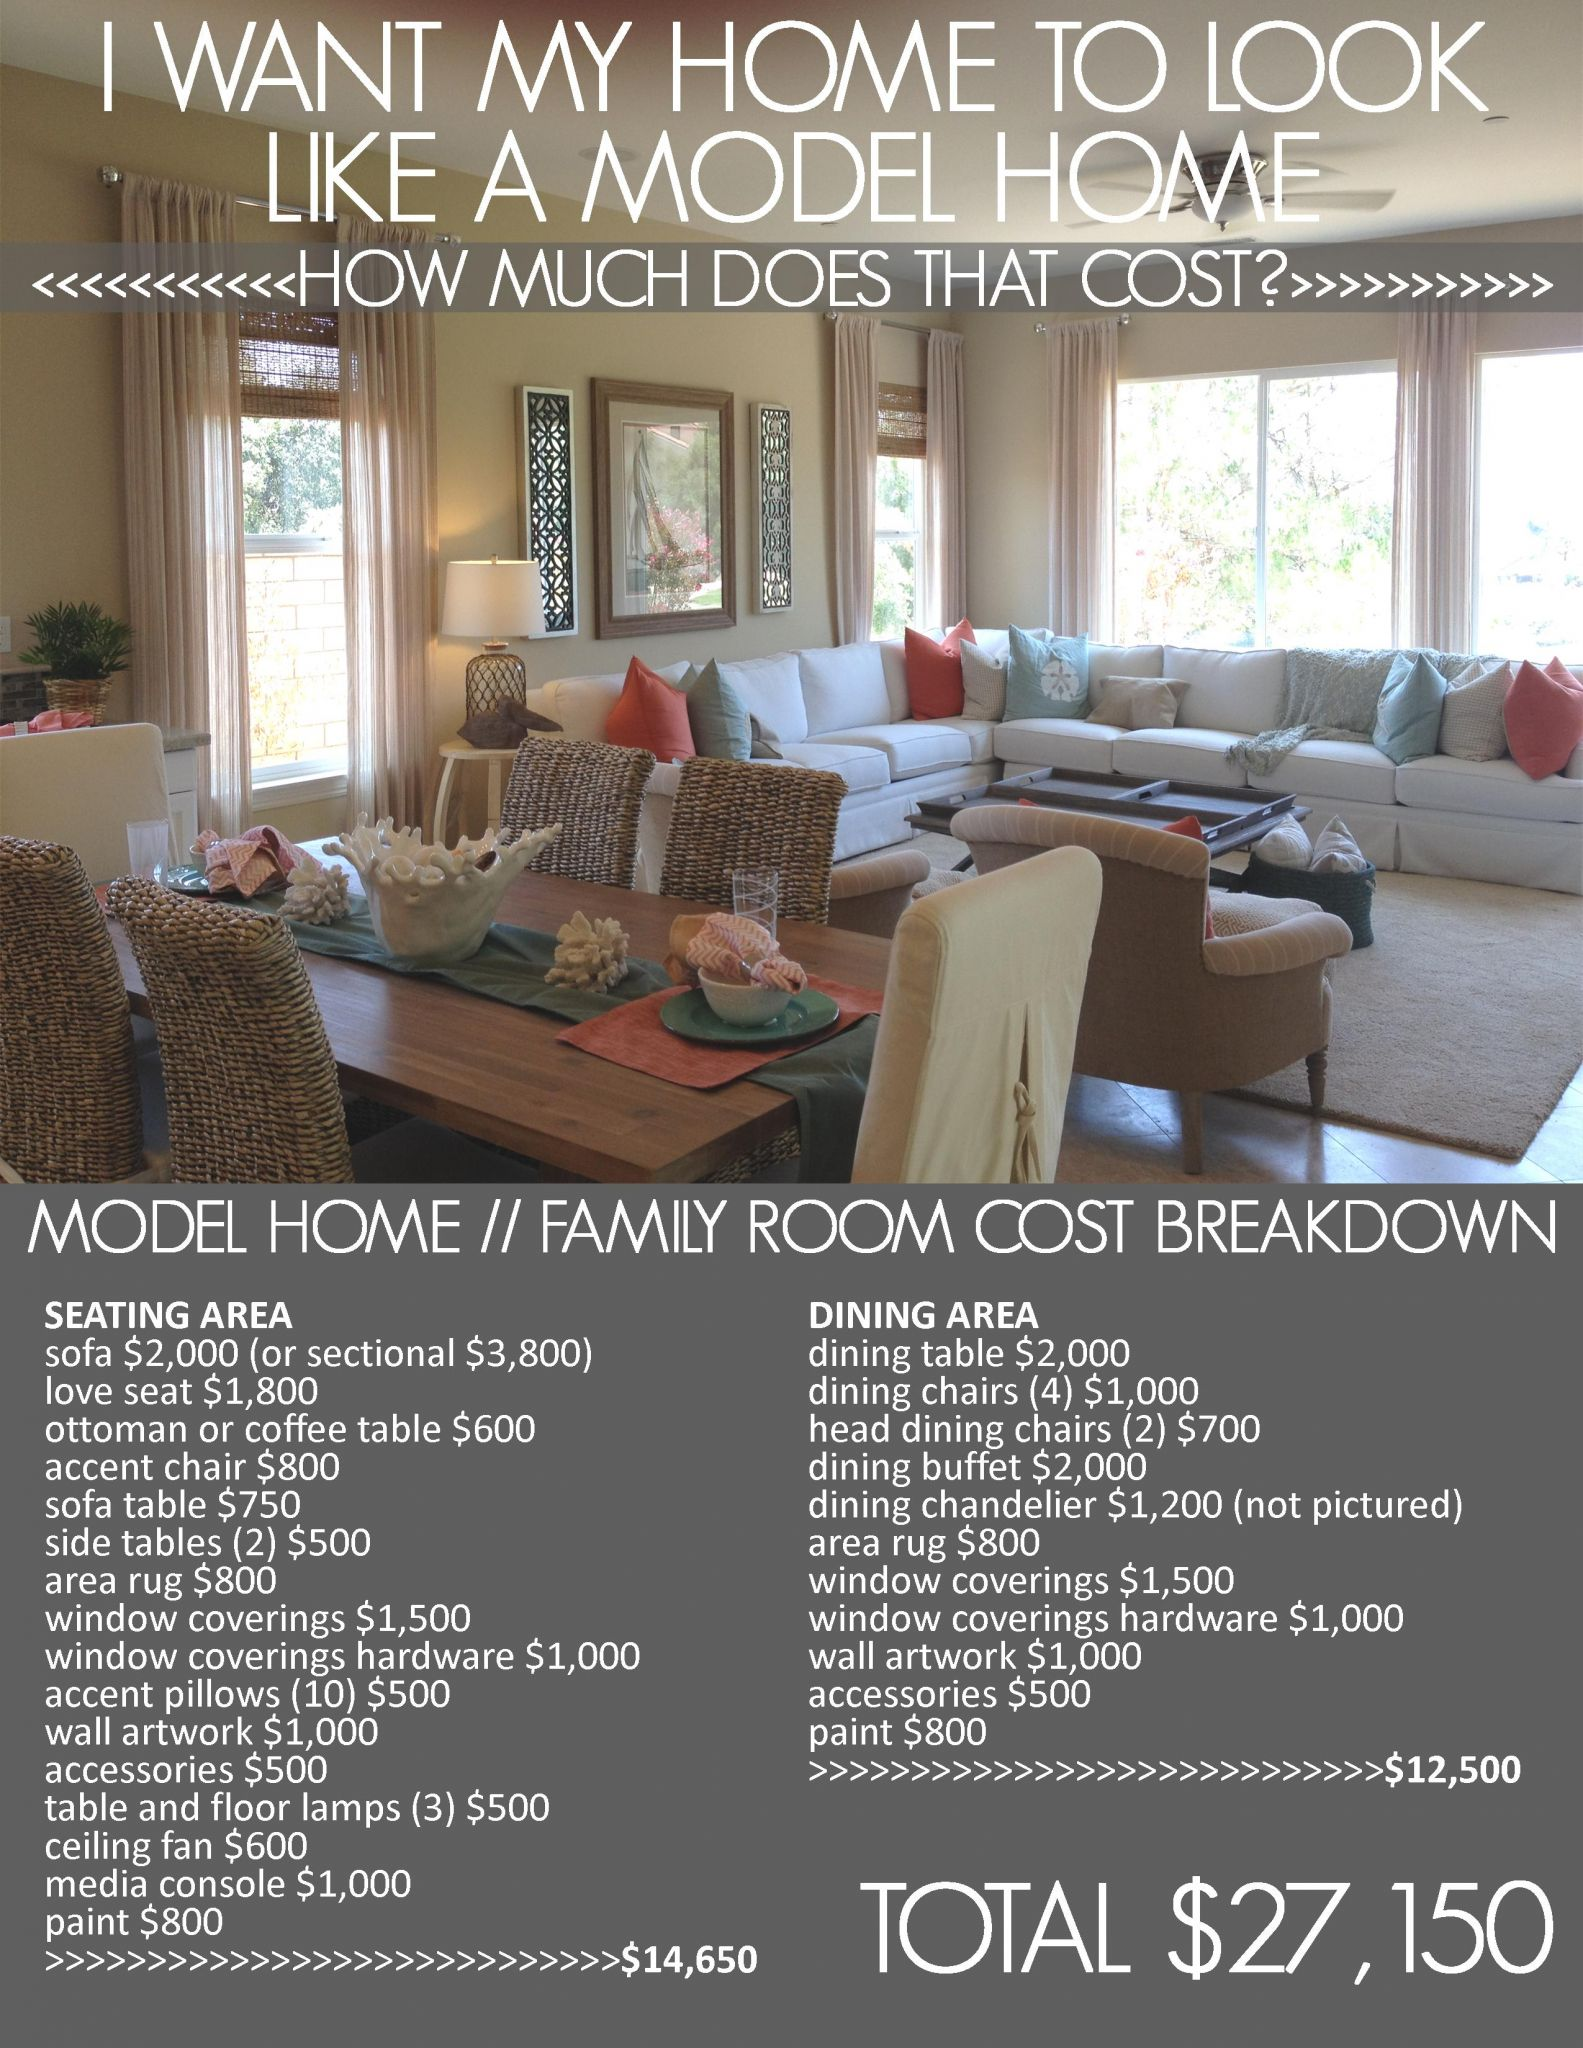 Model Home Cost